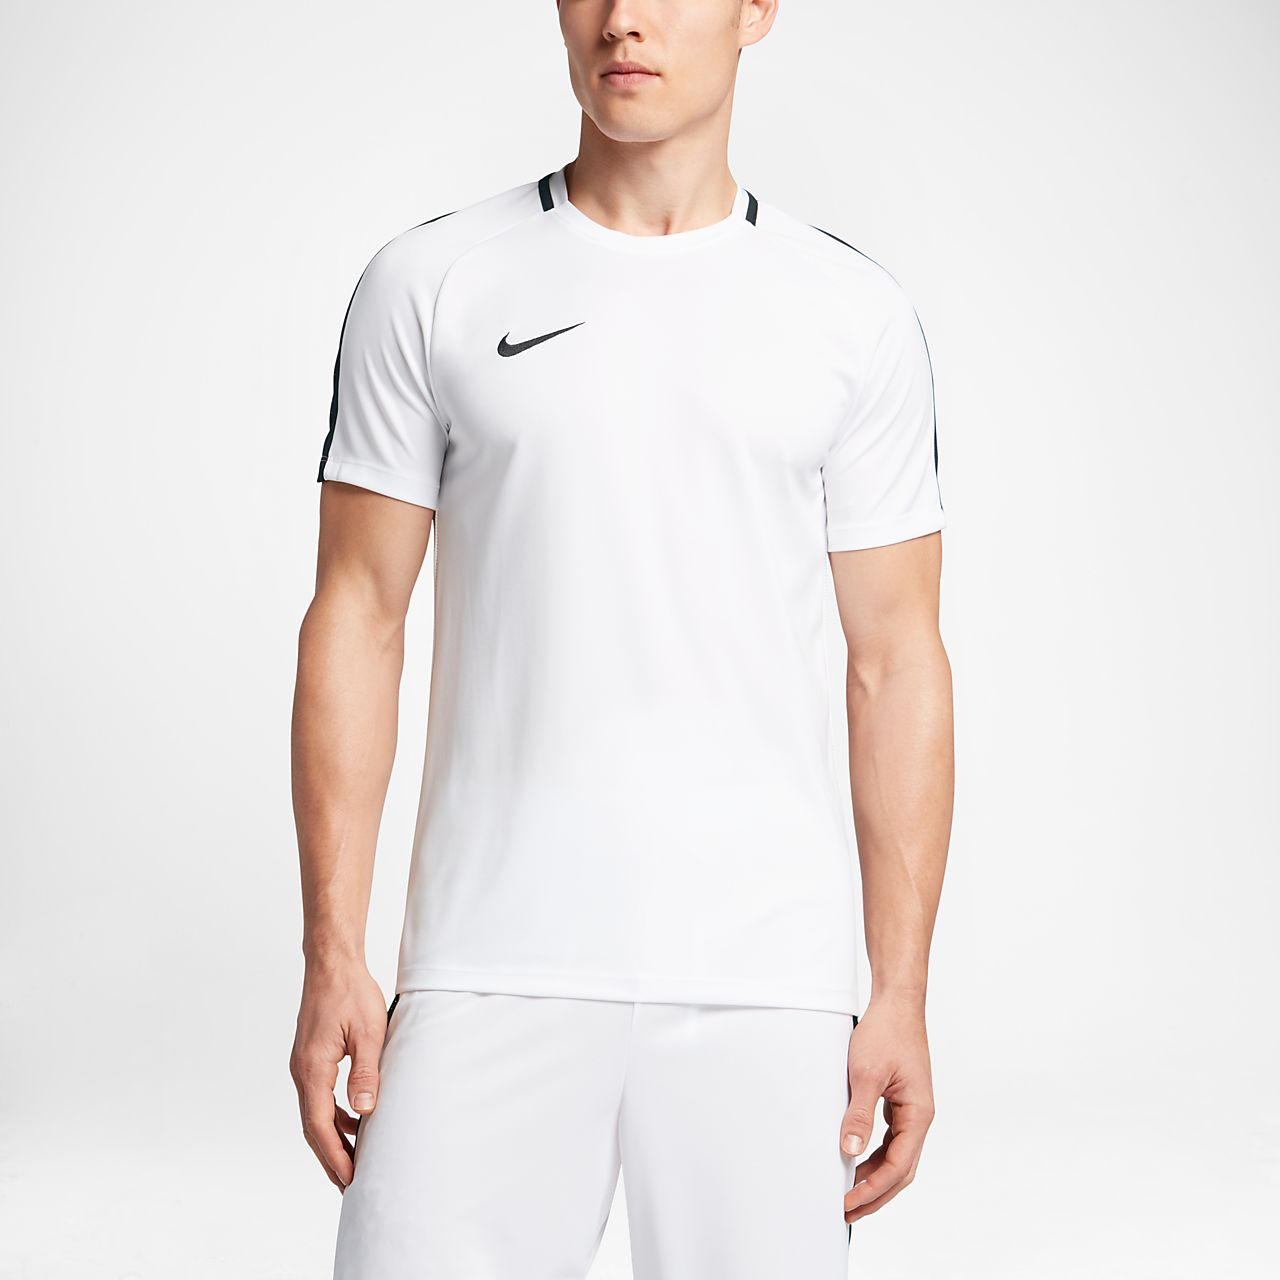 ... Nike Dri-FIT Academy Men's Soccer Top